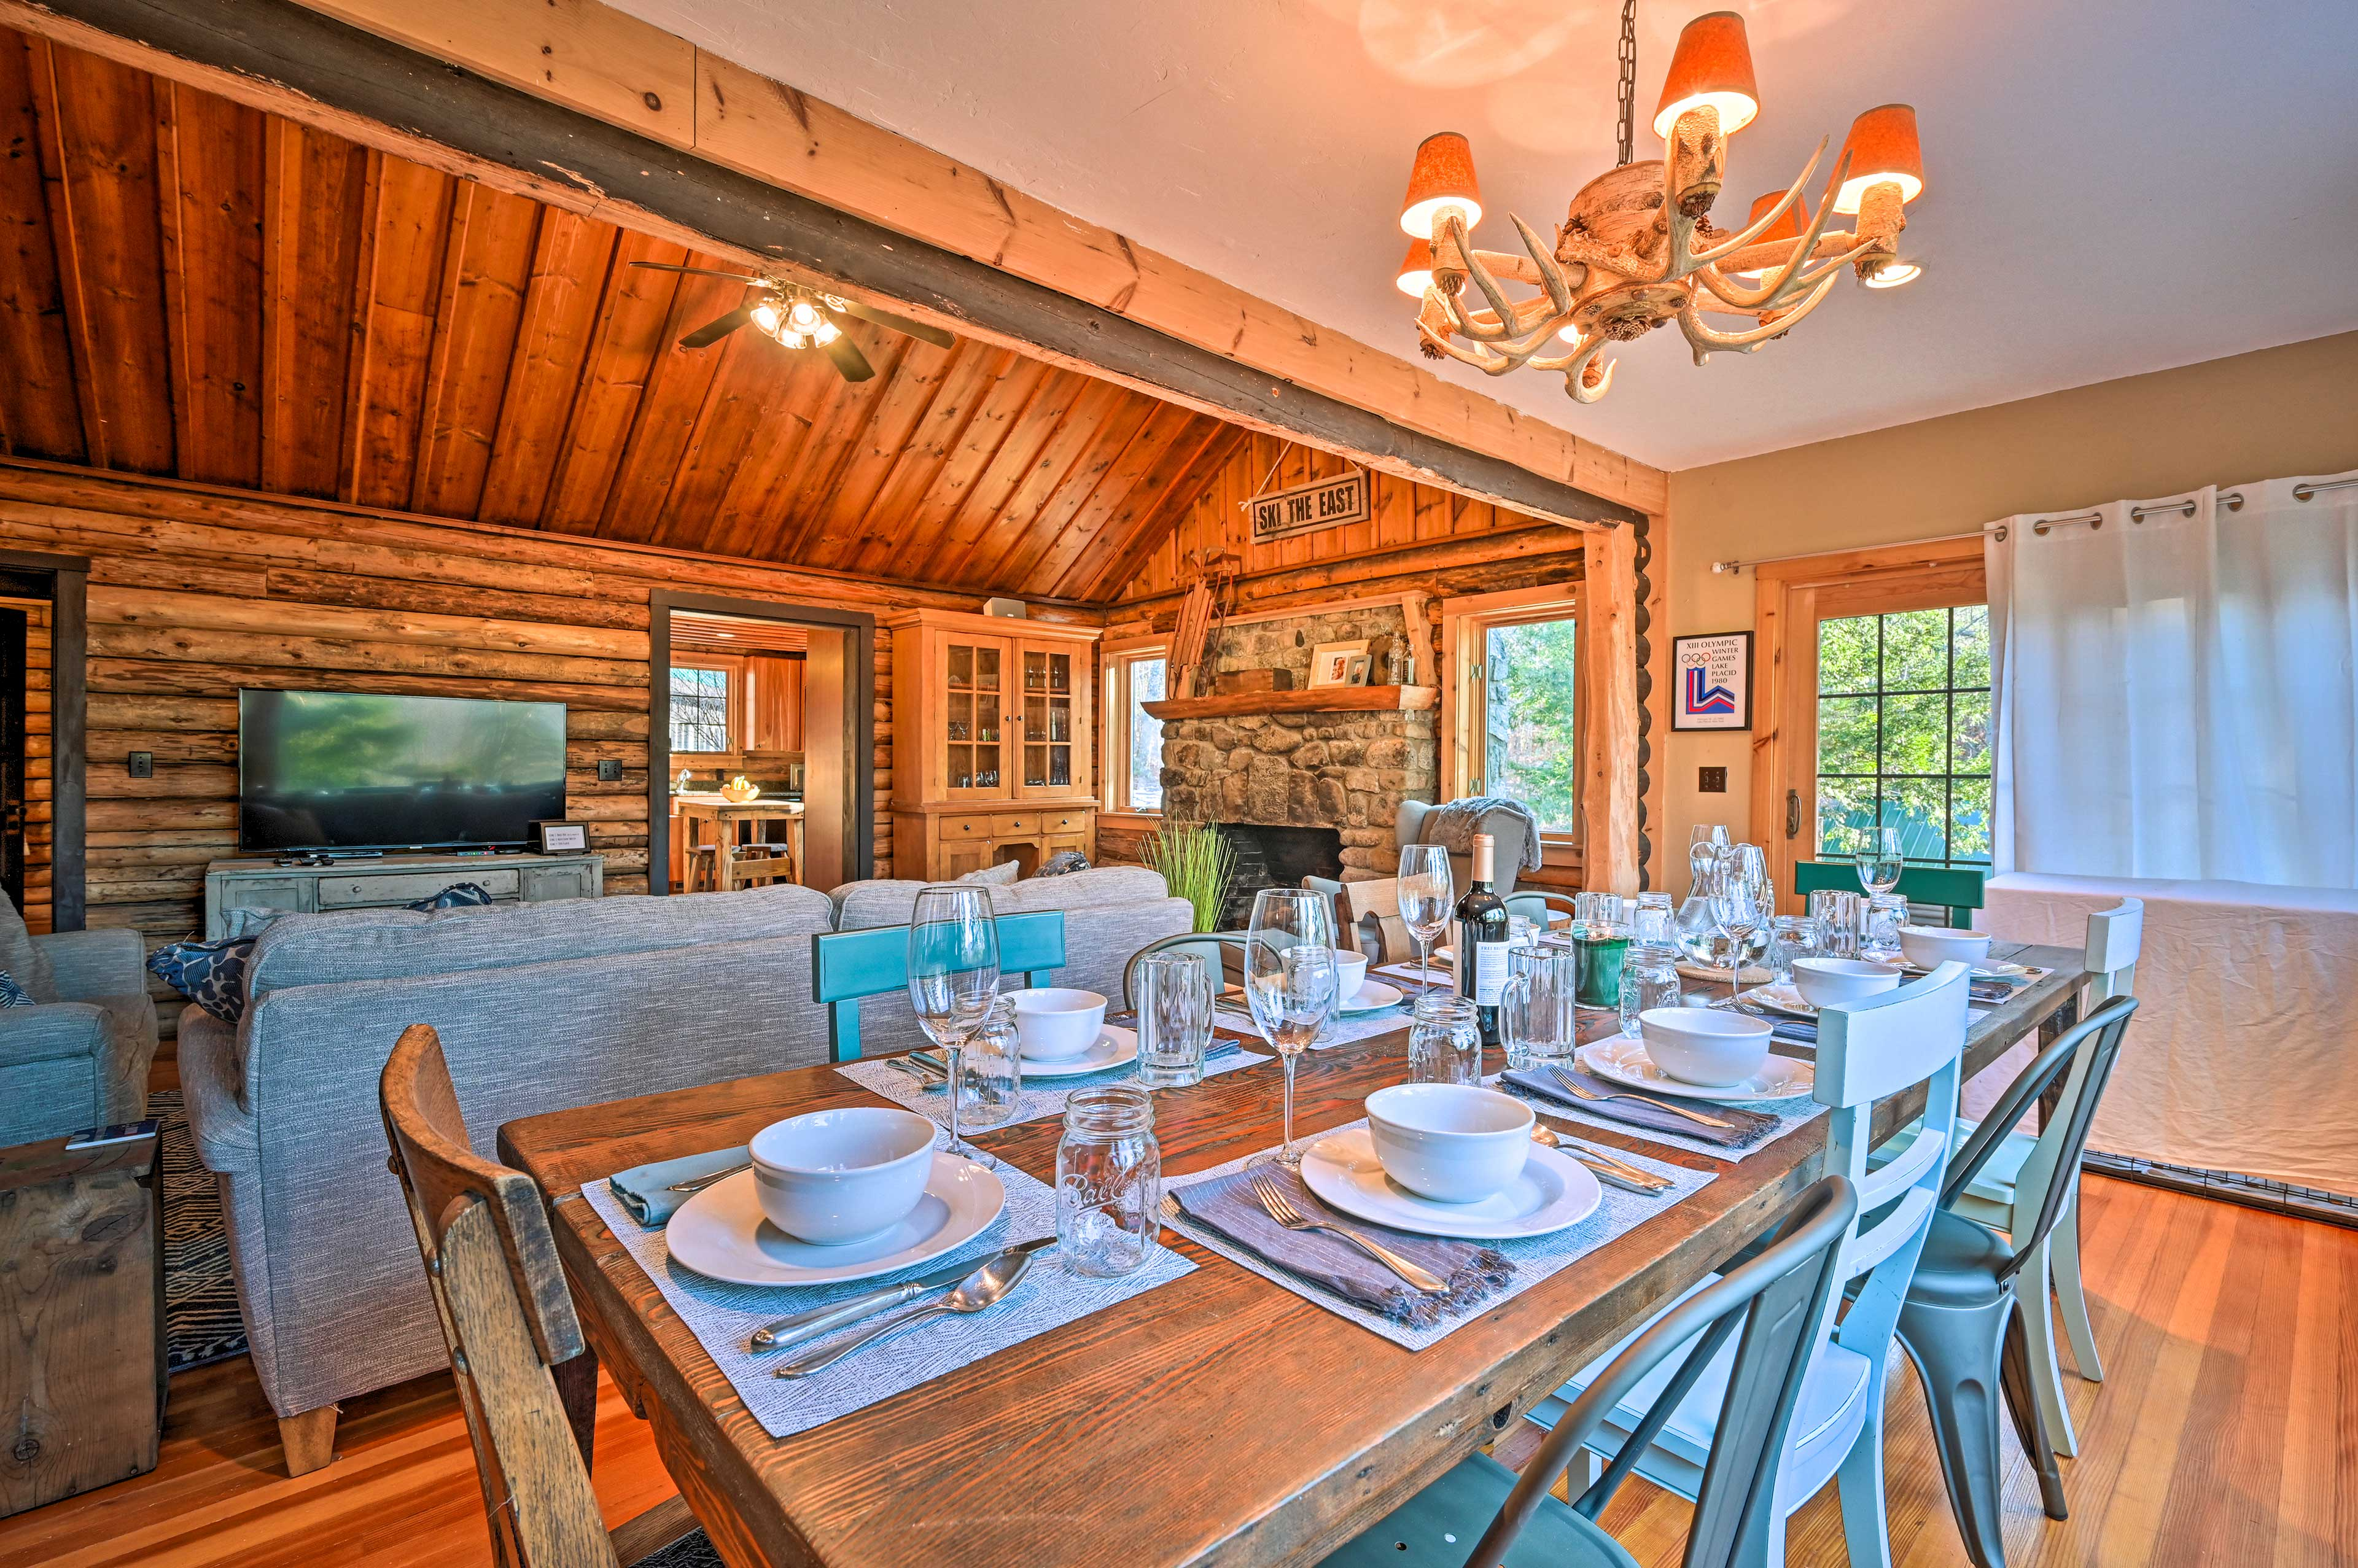 Dine in style along this rustic dinner table!